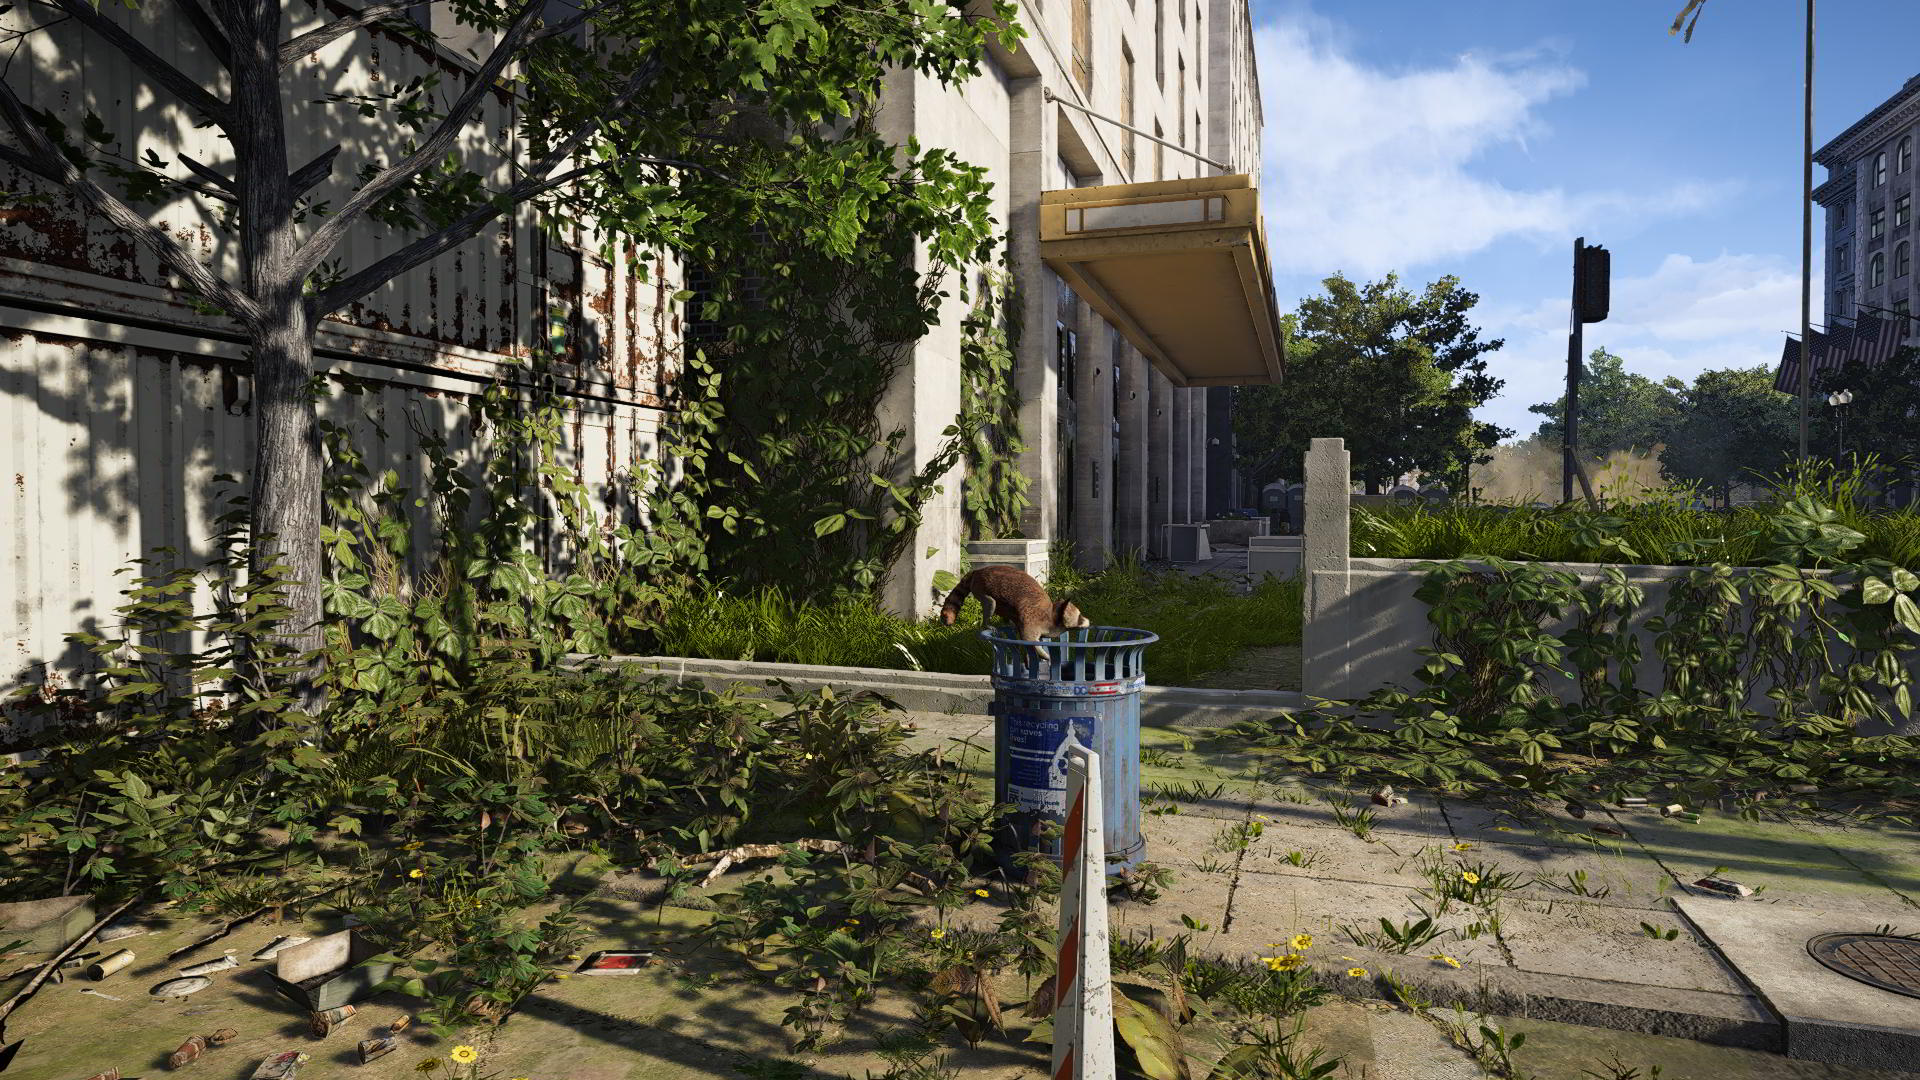 Tom Clancy's The Division 2_20190511_174424.jpg